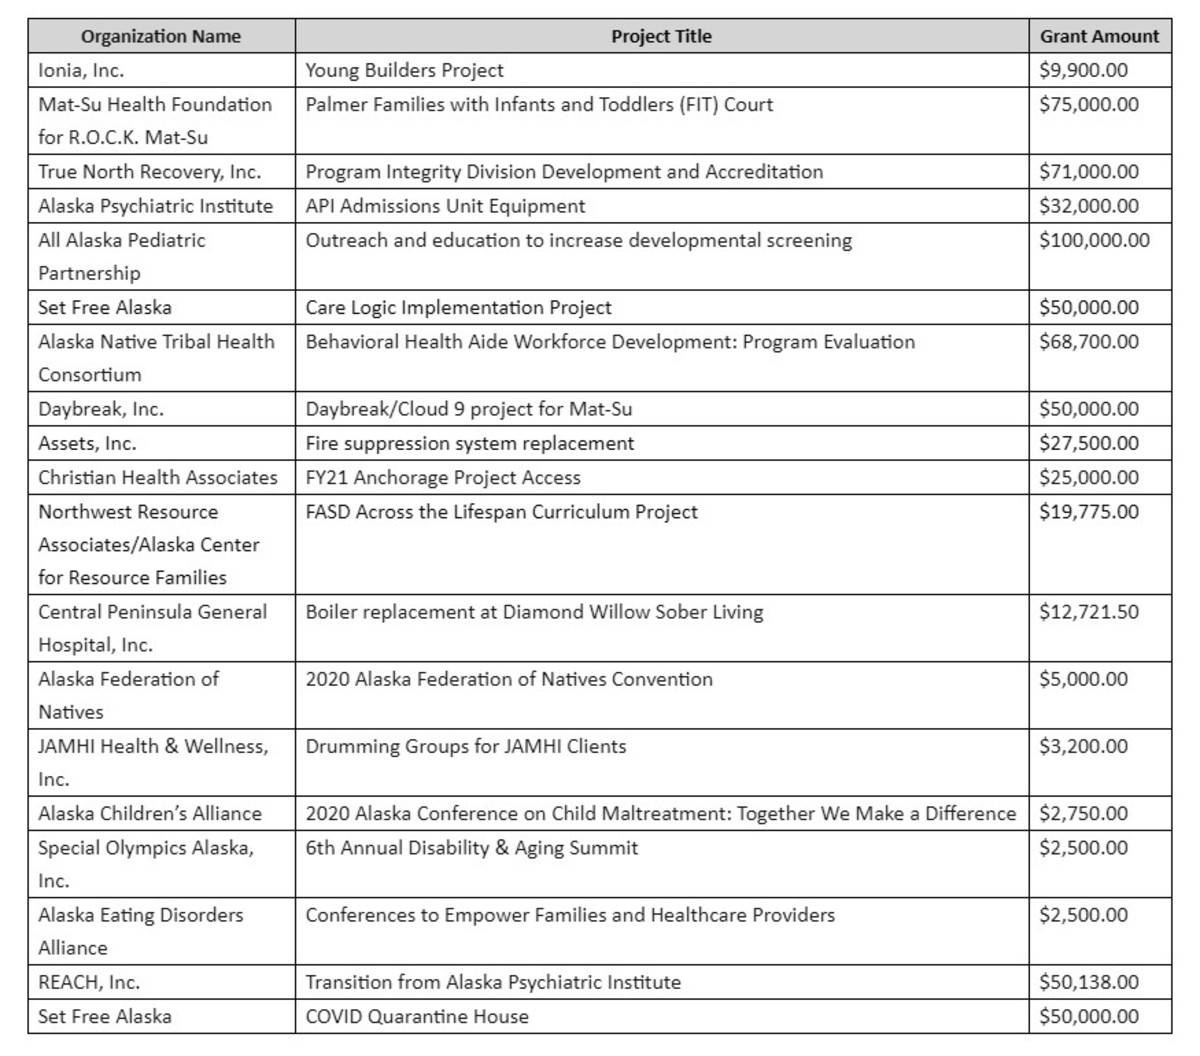 Complete list of Alaska Mental Health Trust Authority grants awarded in the last quarter. (as at Jan 13, 2021)